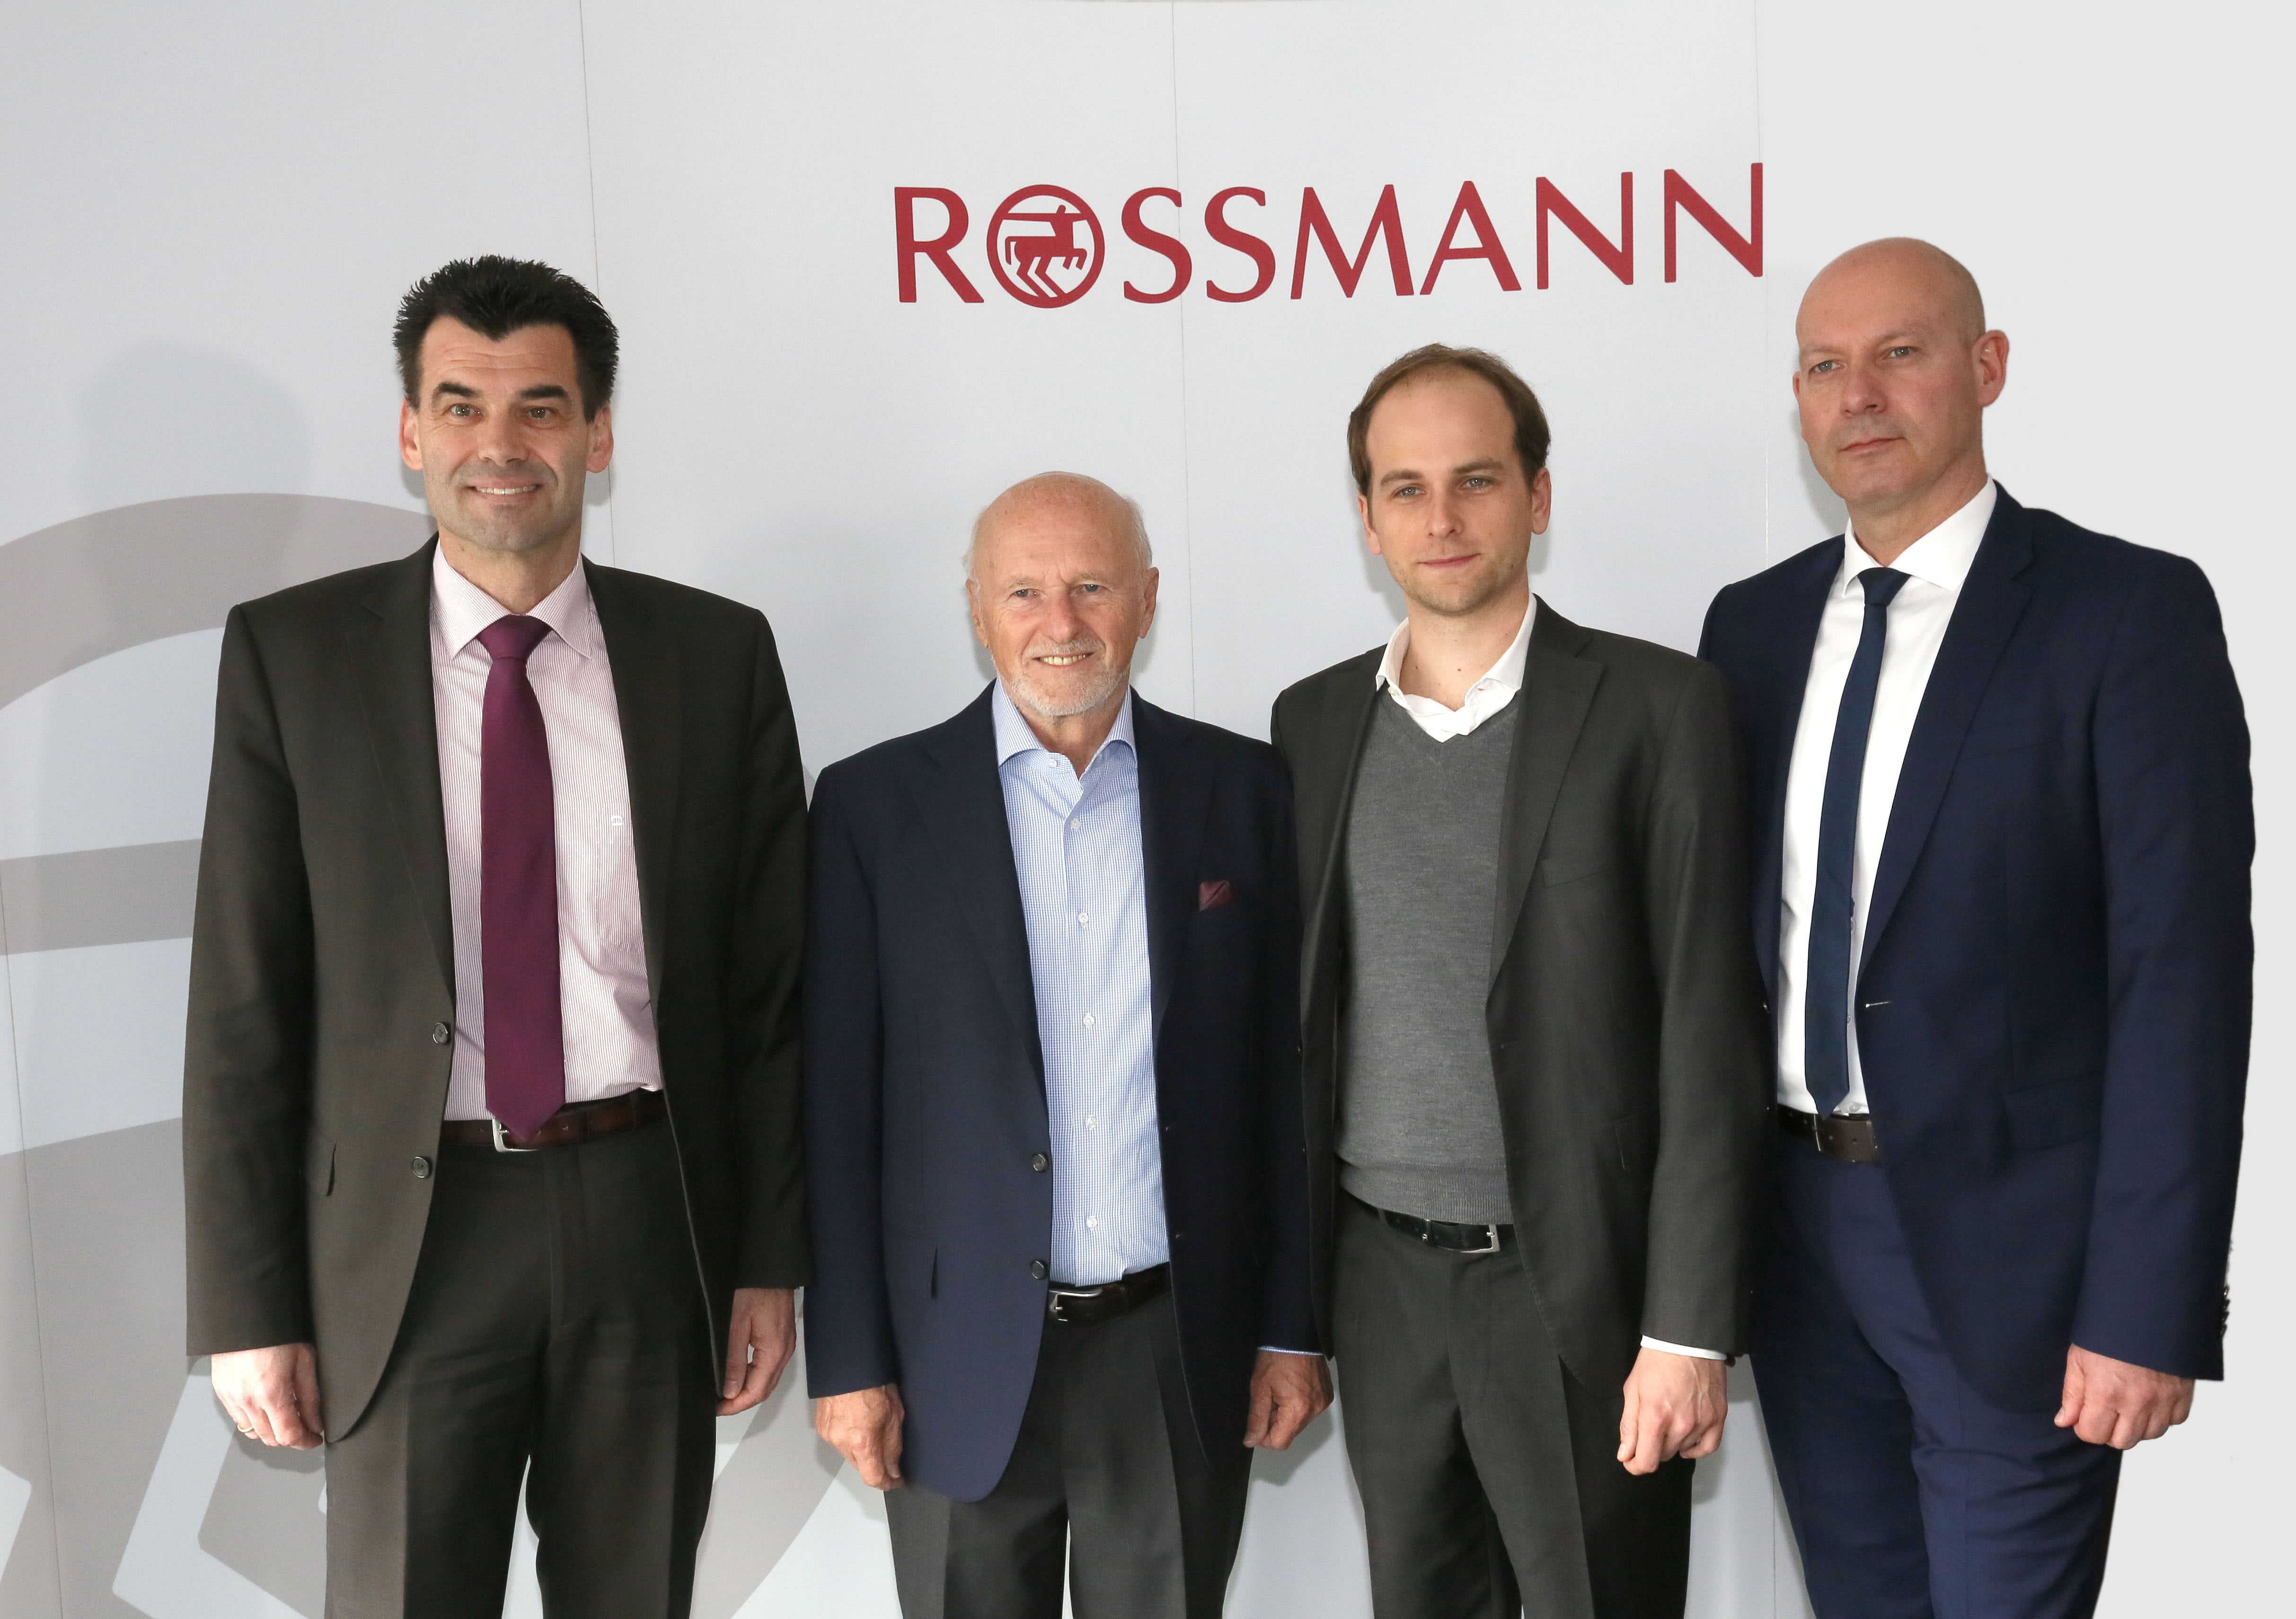 rossmann jahrespressekonferenz rossmann unternehmen. Black Bedroom Furniture Sets. Home Design Ideas